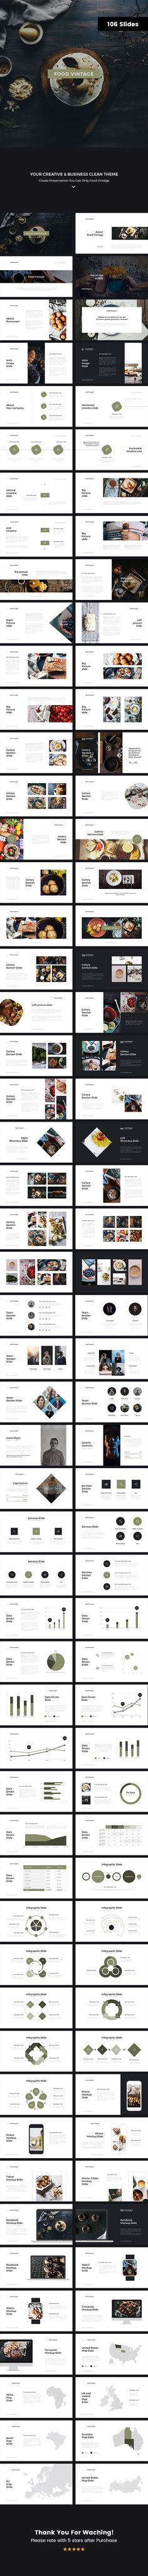 Food Vintage 3 Powerpoint Template